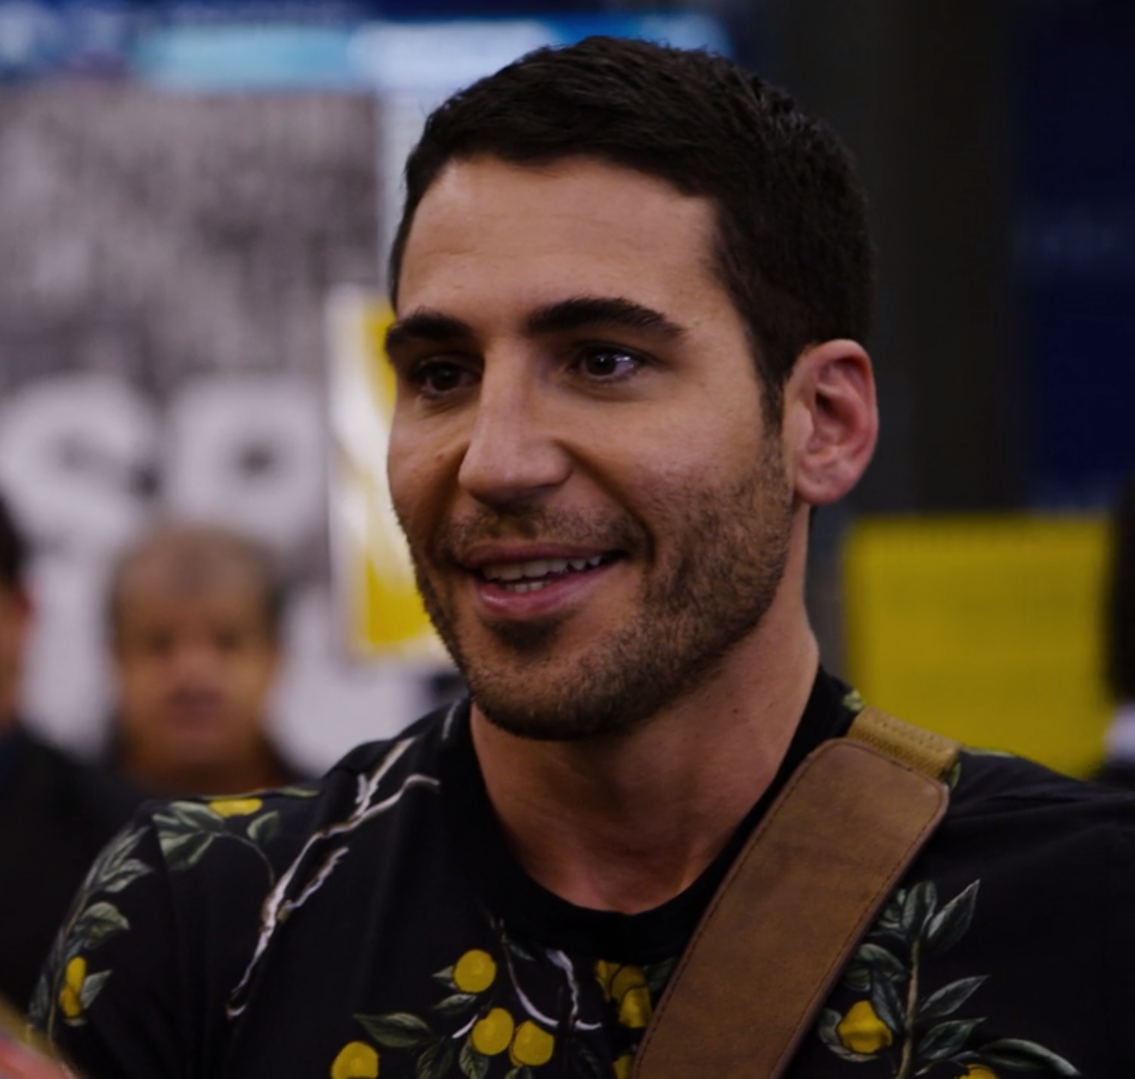 Lito Rodriguez | Sense8 Wiki | FANDOM powered by Wikia